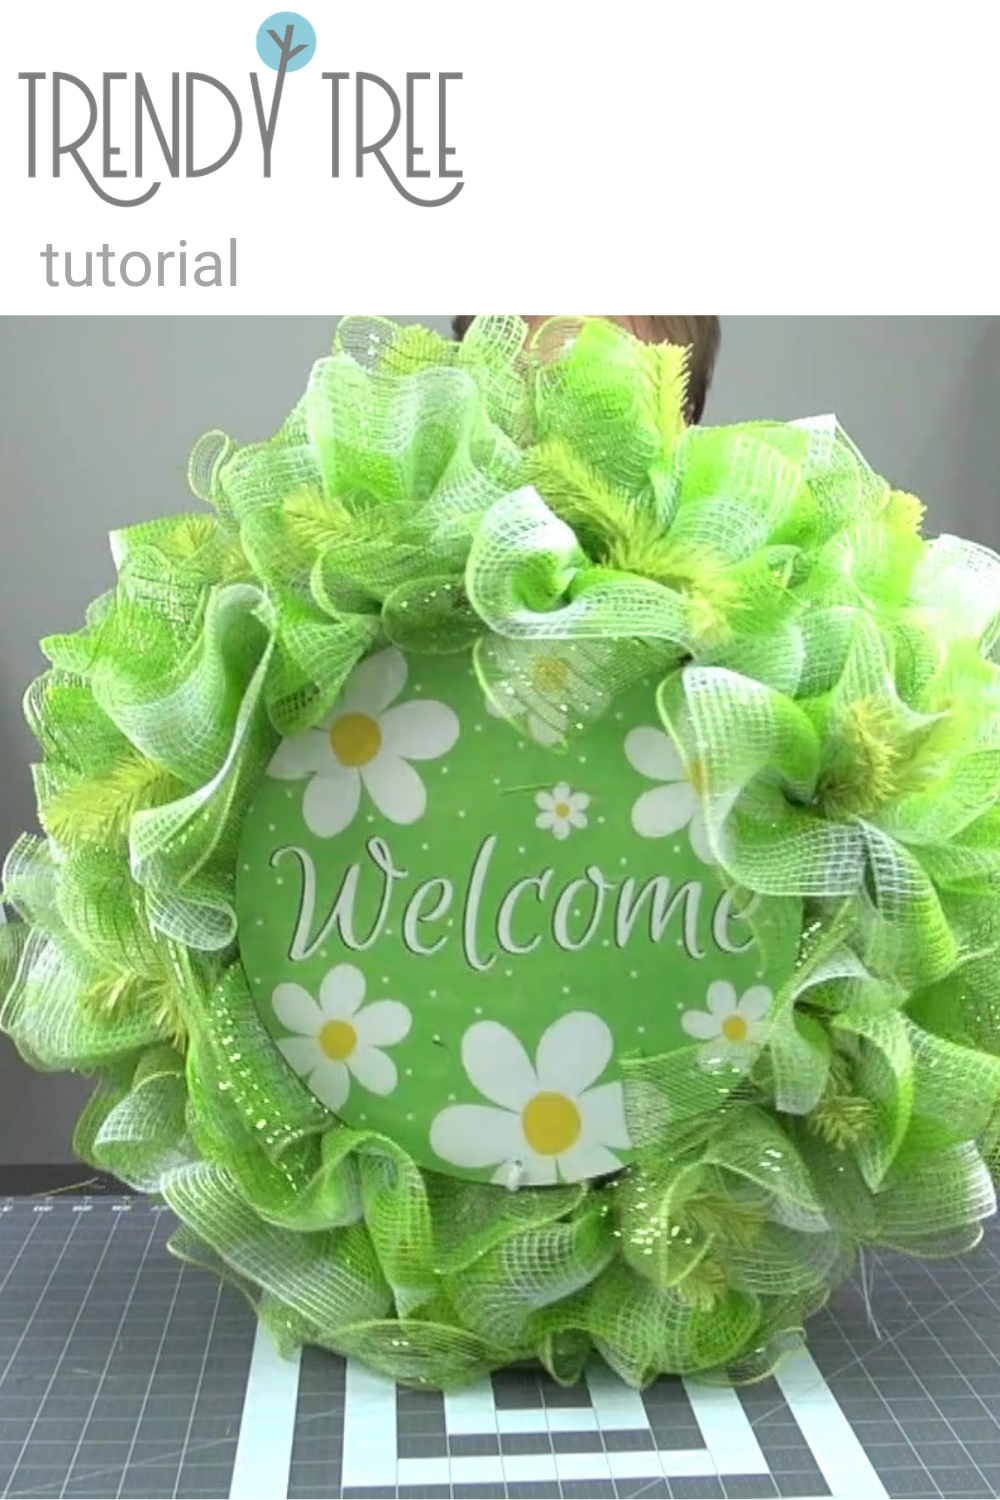 Photo of Spring Welcome Ruffle Wreath Tutorial – Trendy Tree Blog  Holiday Decor Inspiration   Wreath Tutorials Holiday Decorations  Mesh & Ribbons